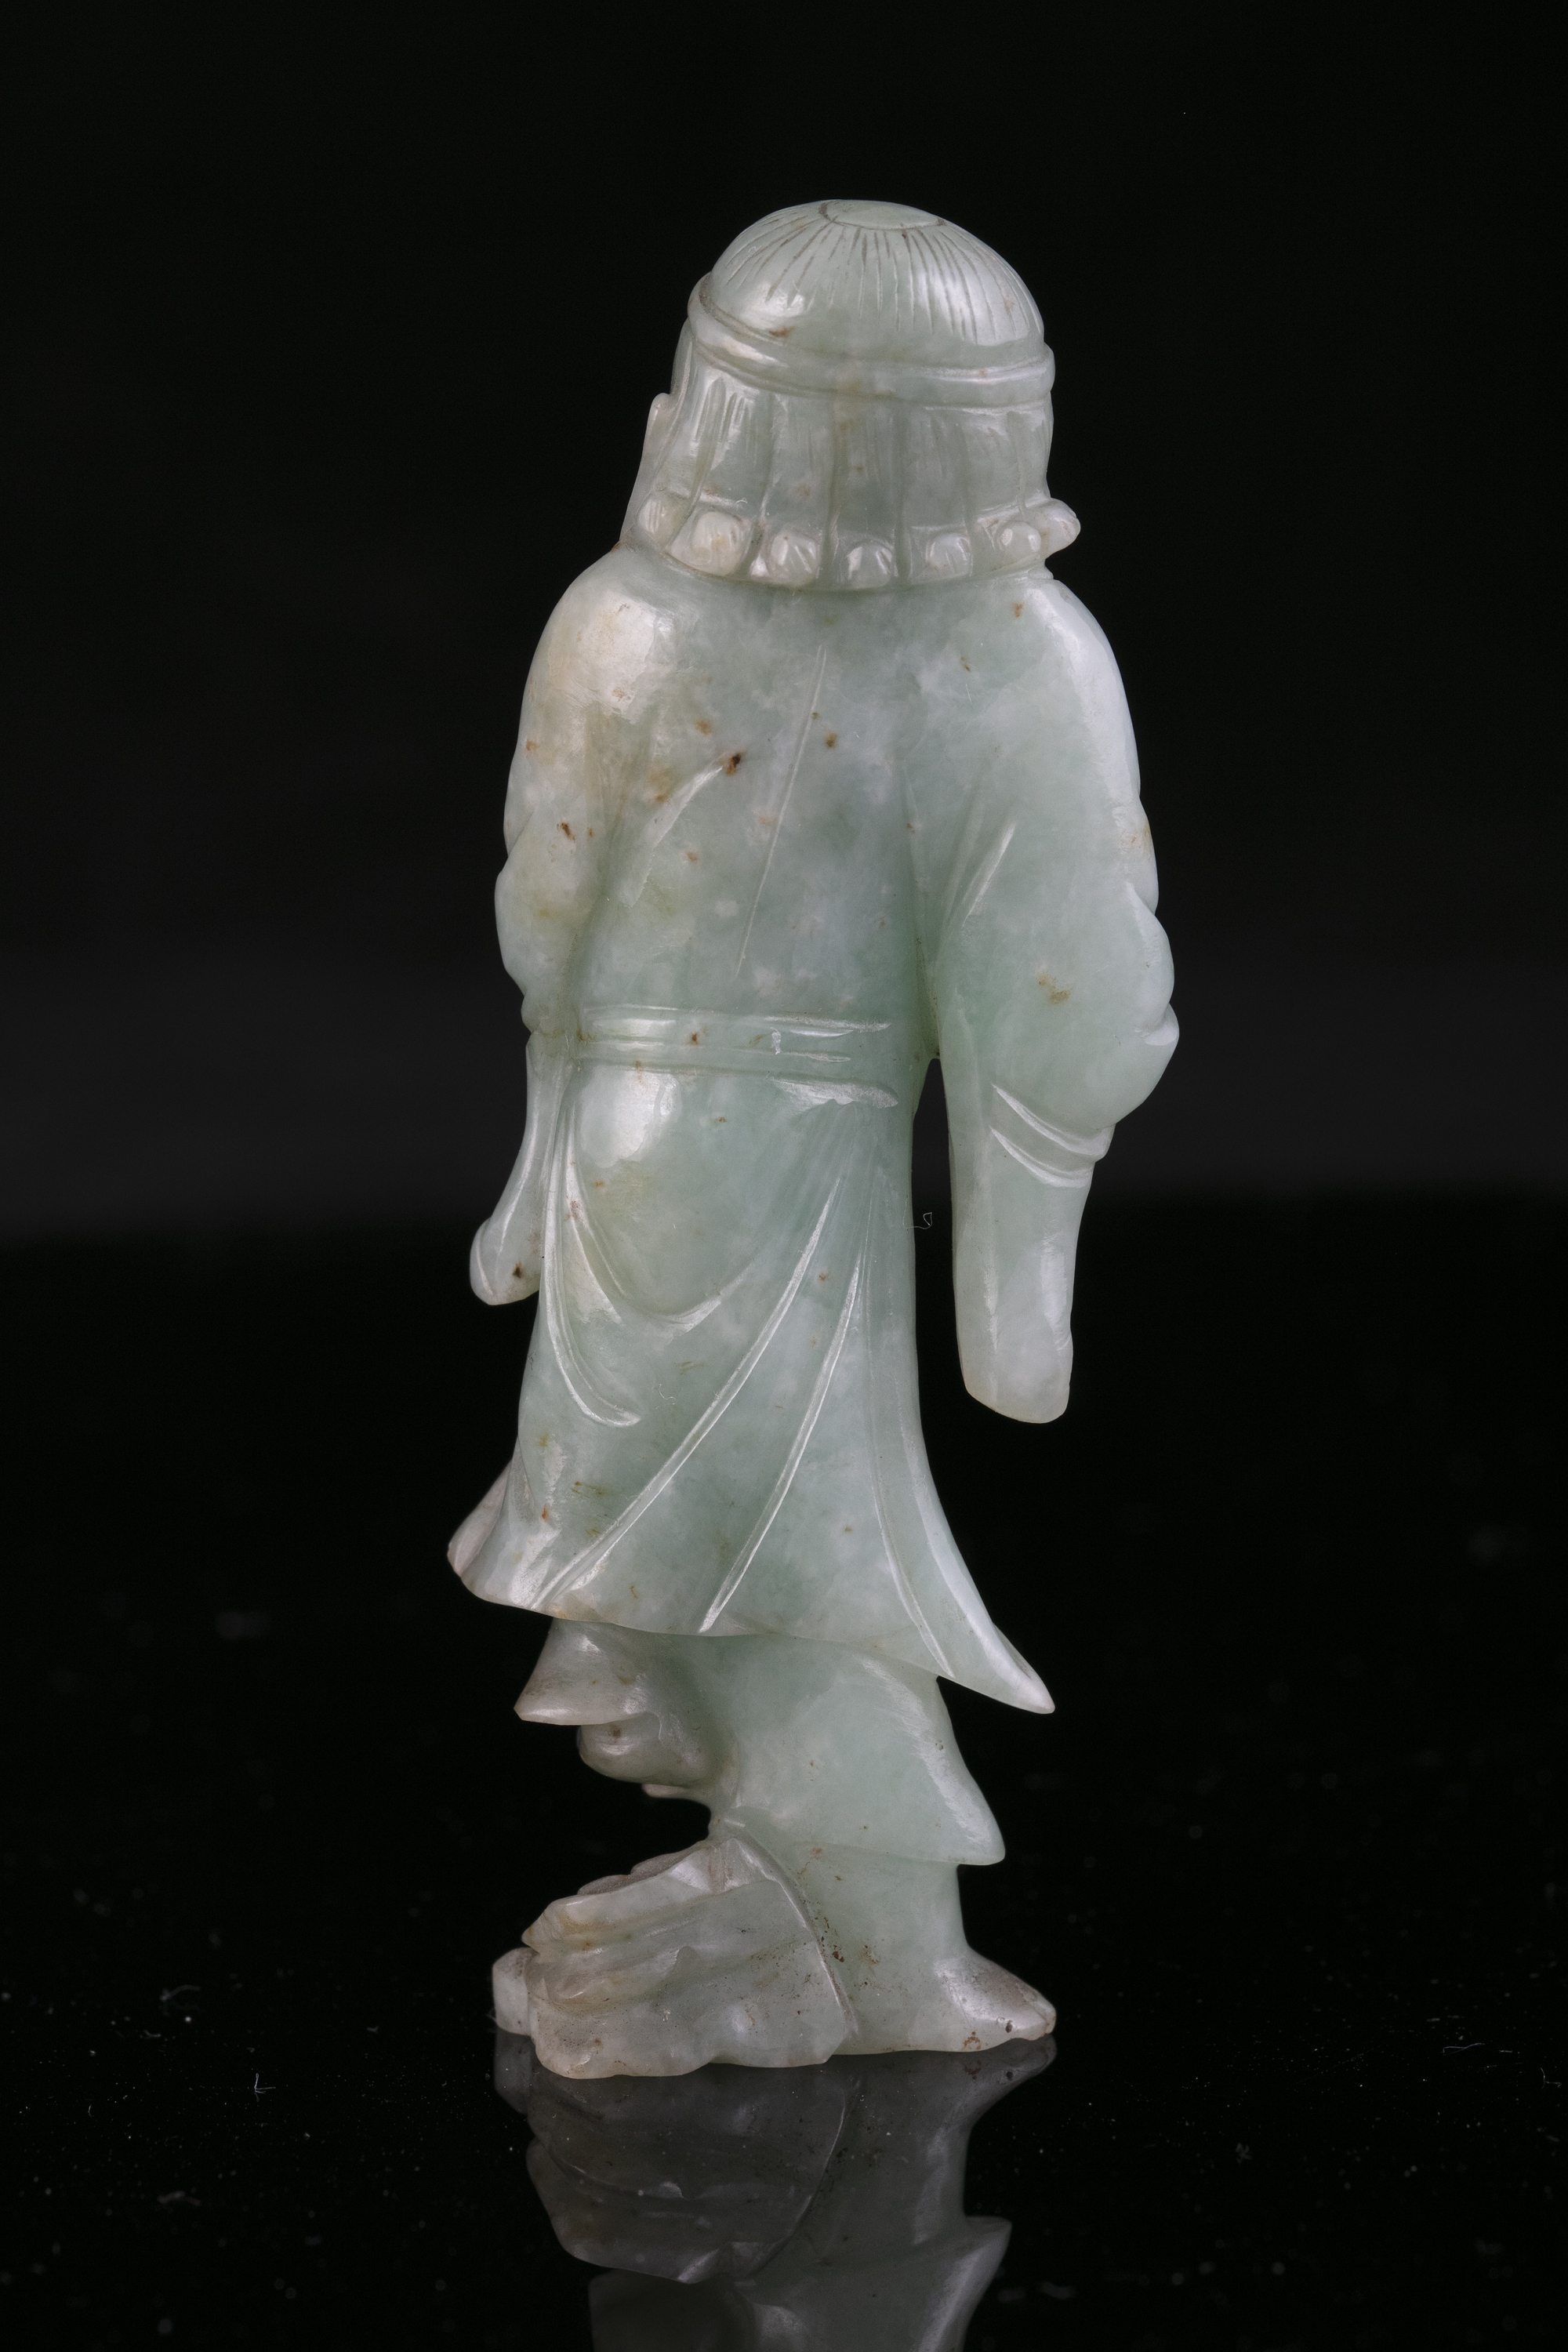 A JADEITE JADE FIGURE OF A STANDING TIEGUAI LI China, Circa 1900 The immortal is depicted with a - Image 10 of 20